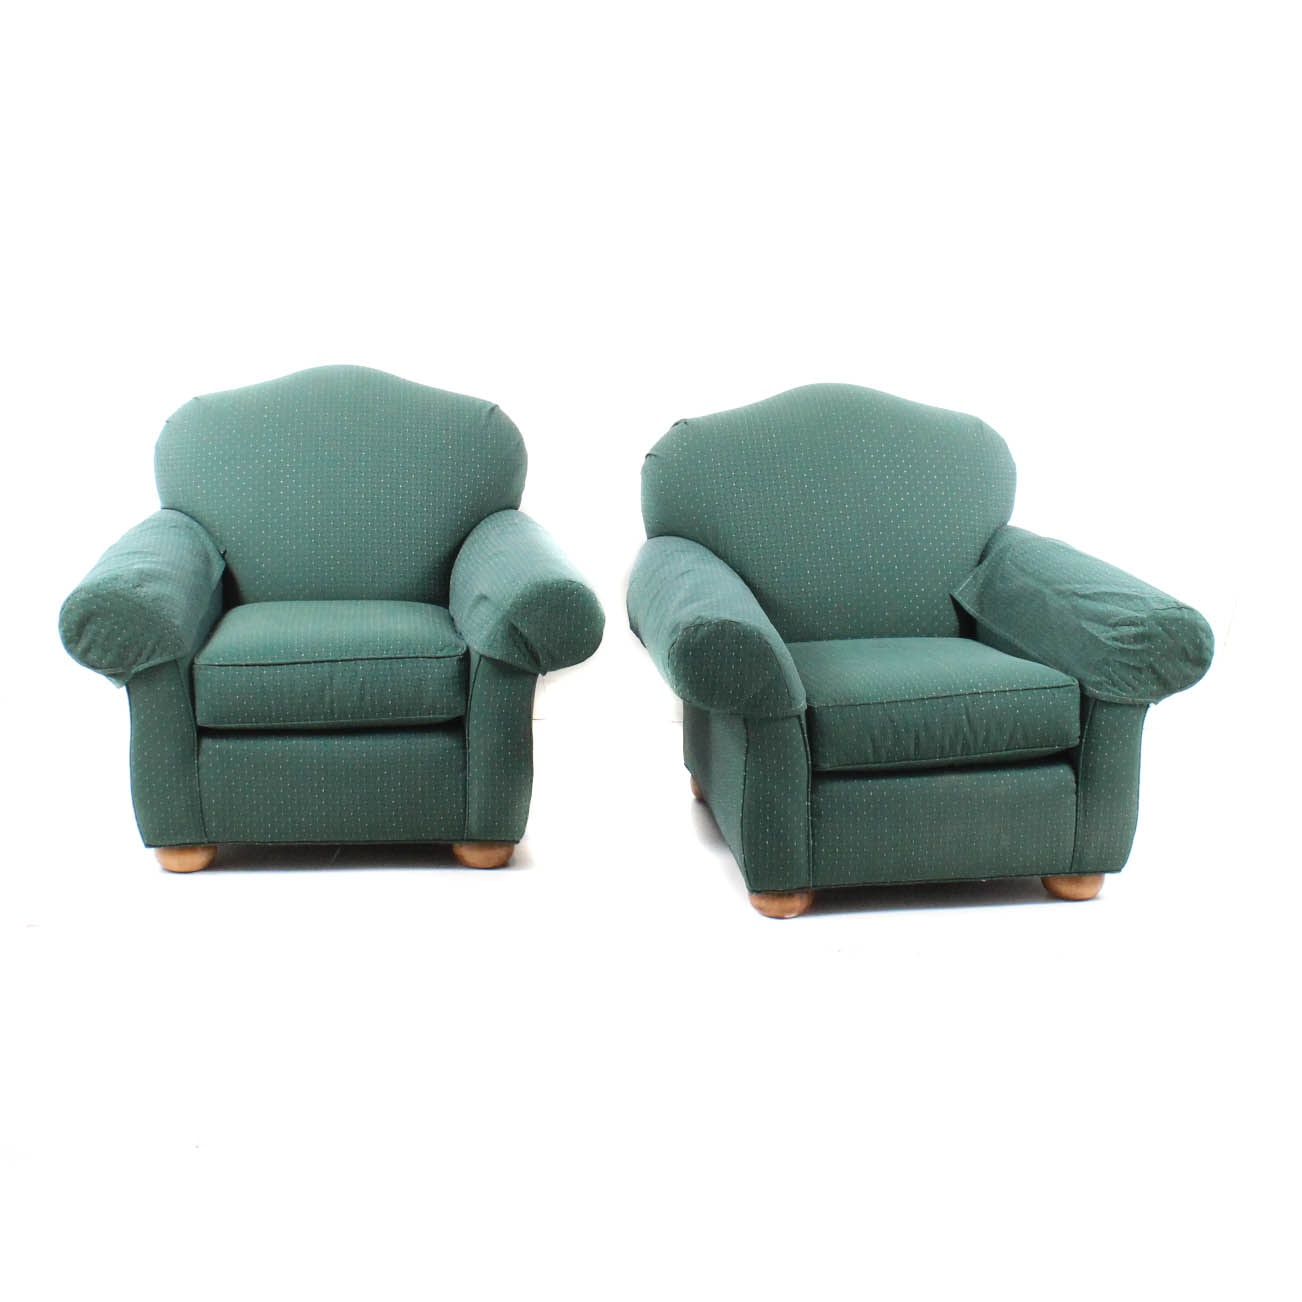 "Laine Furniture ""Carolina Collection"" Upholstered Armchairs"